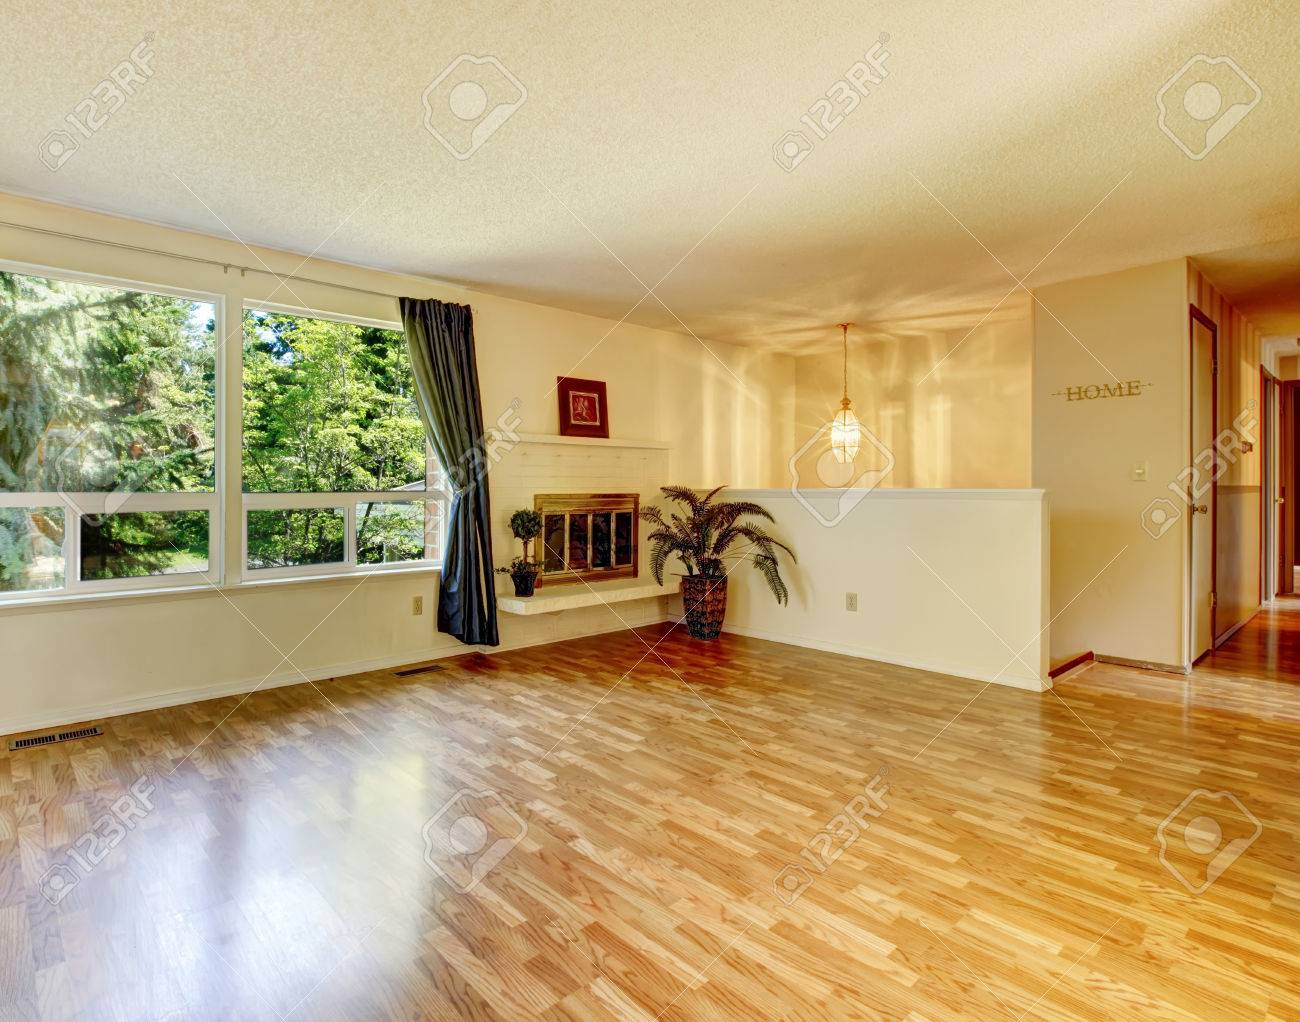 Marvelous Empty Soft Colors Empty Living Room With Shiny Hardwood Floor Home Interior And Landscaping Ologienasavecom